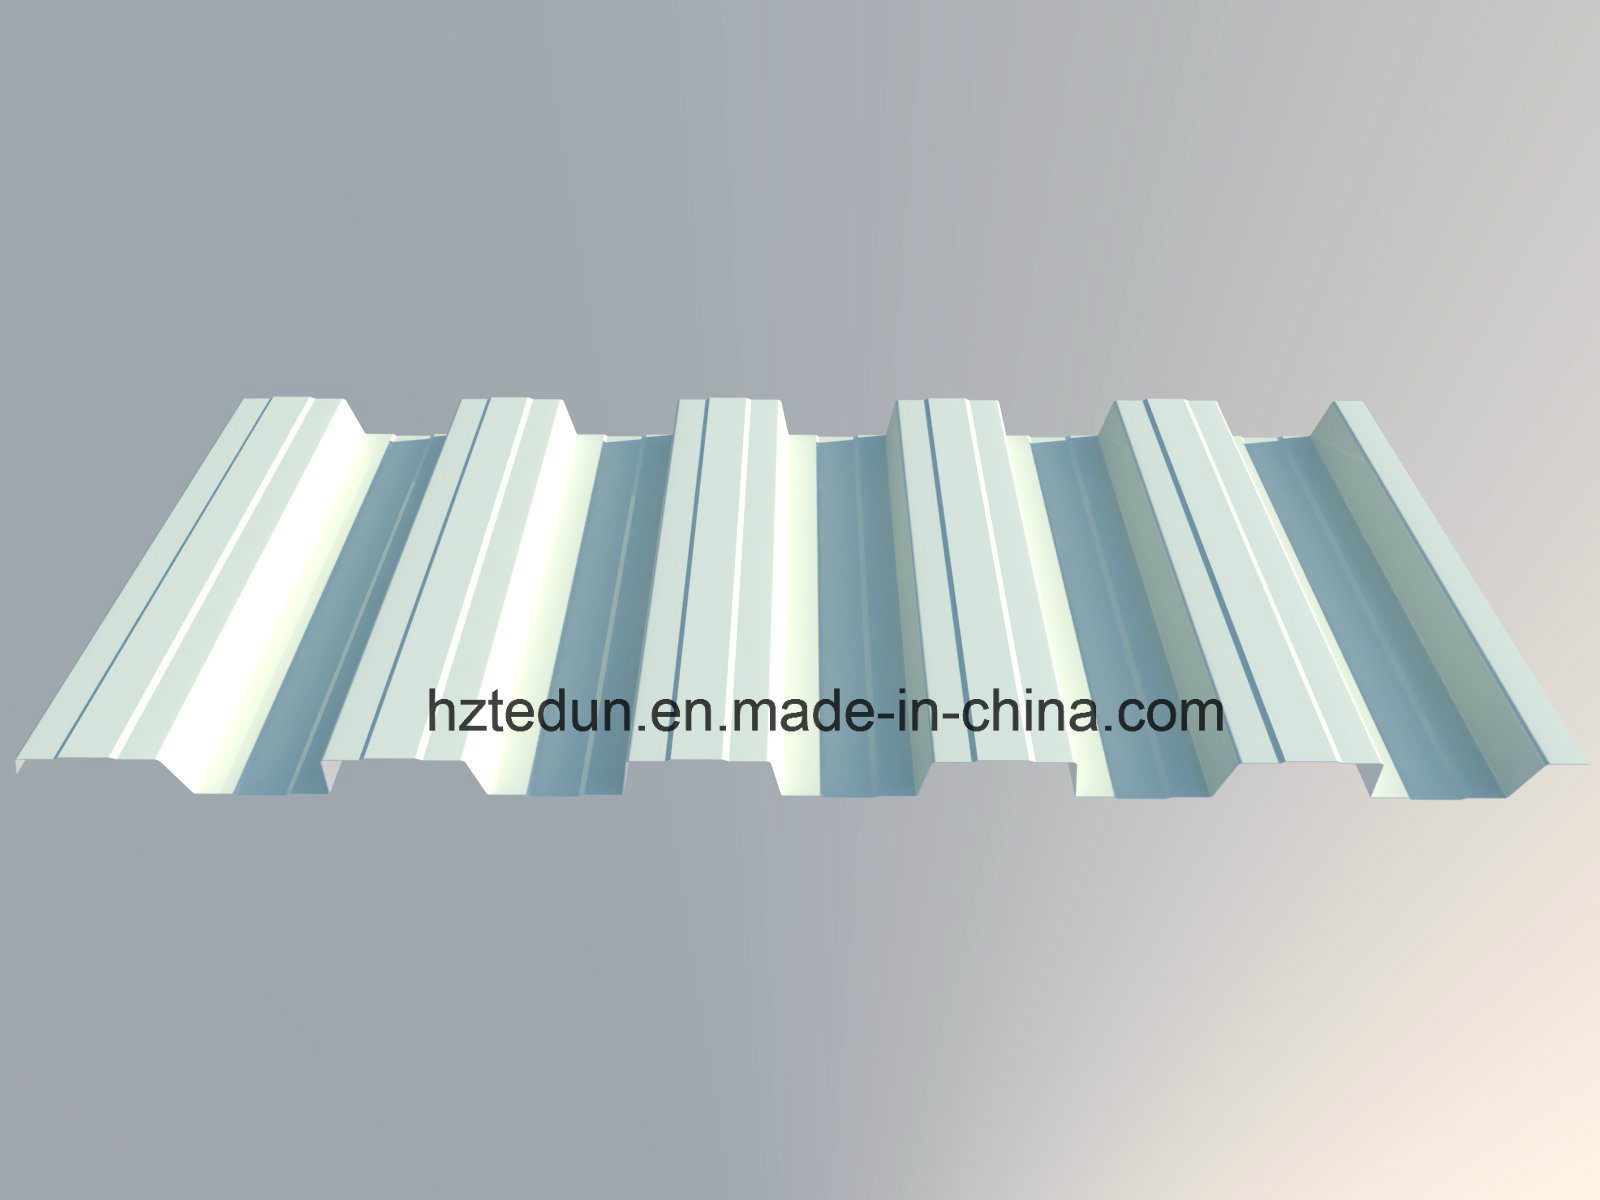 Exclusive Ceiling Sheet for Benz 4s Shop (grey white9002)